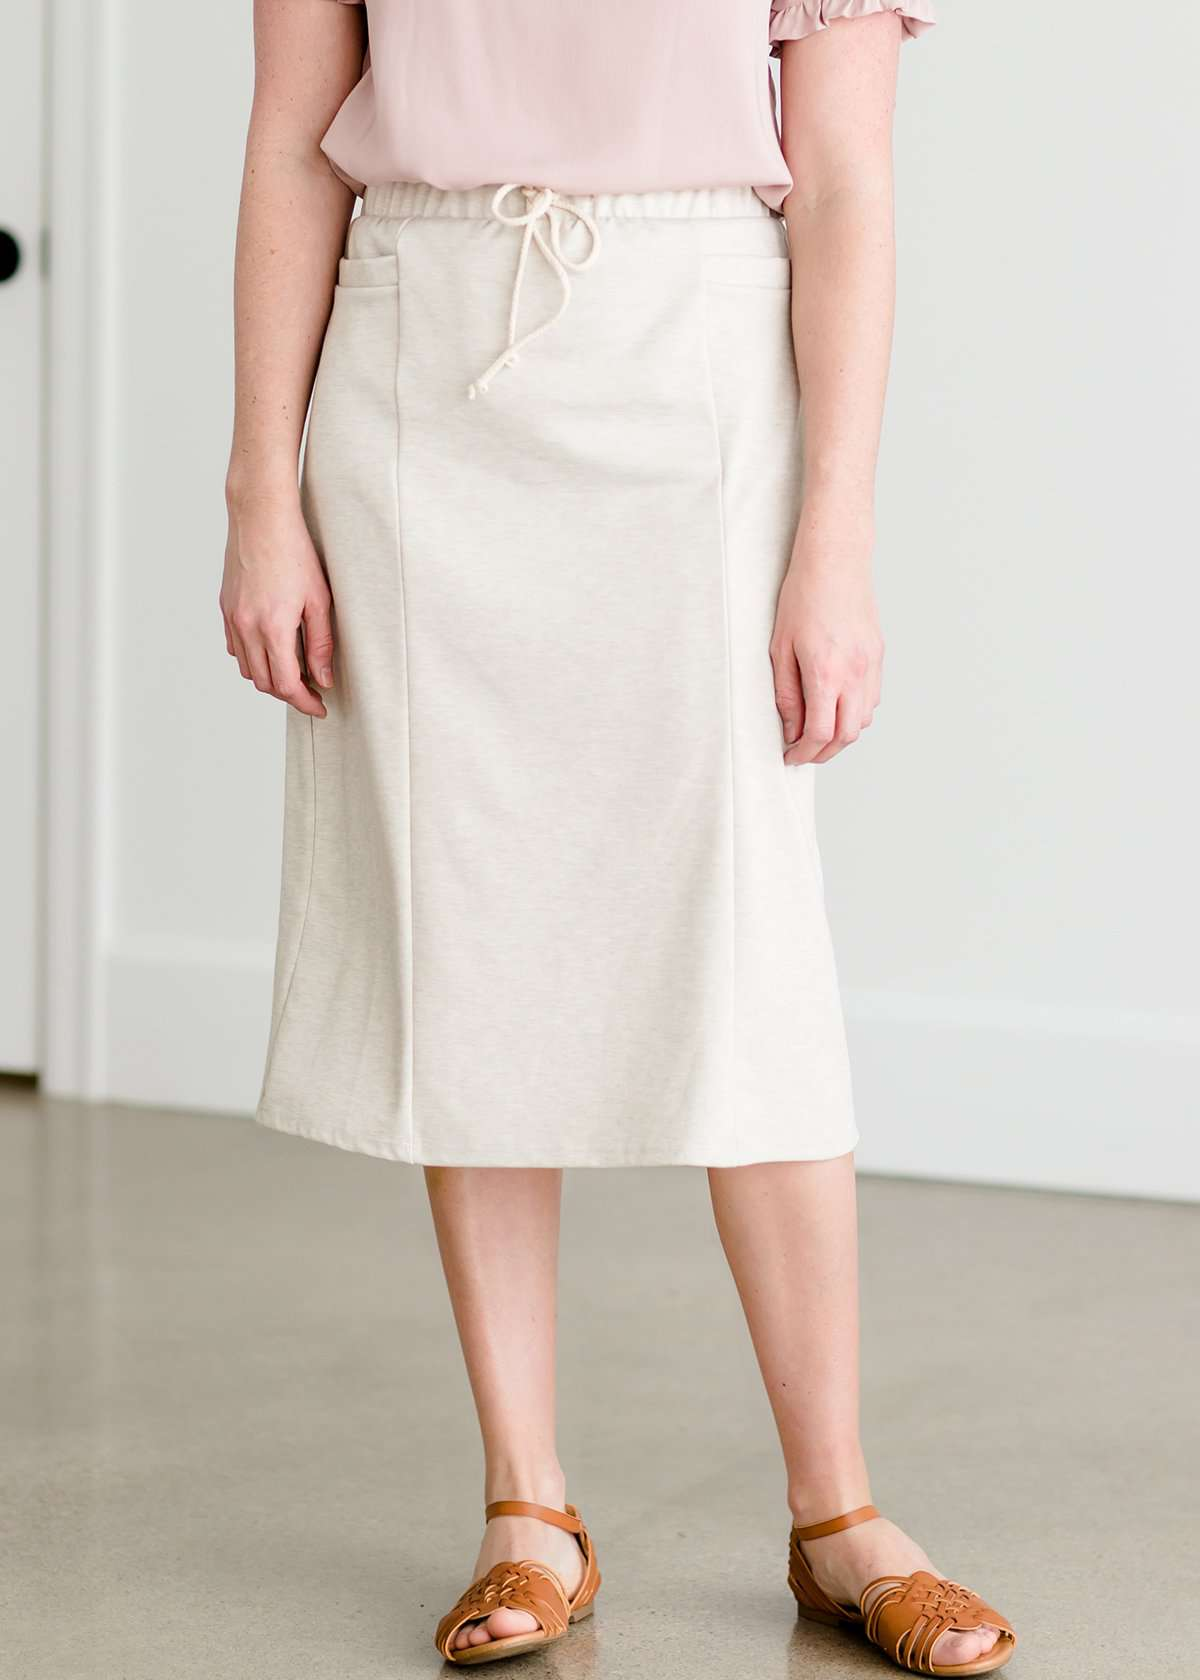 Woman wearing a cream colored french terry below the knee skirt with front ties, front panels and pockets!